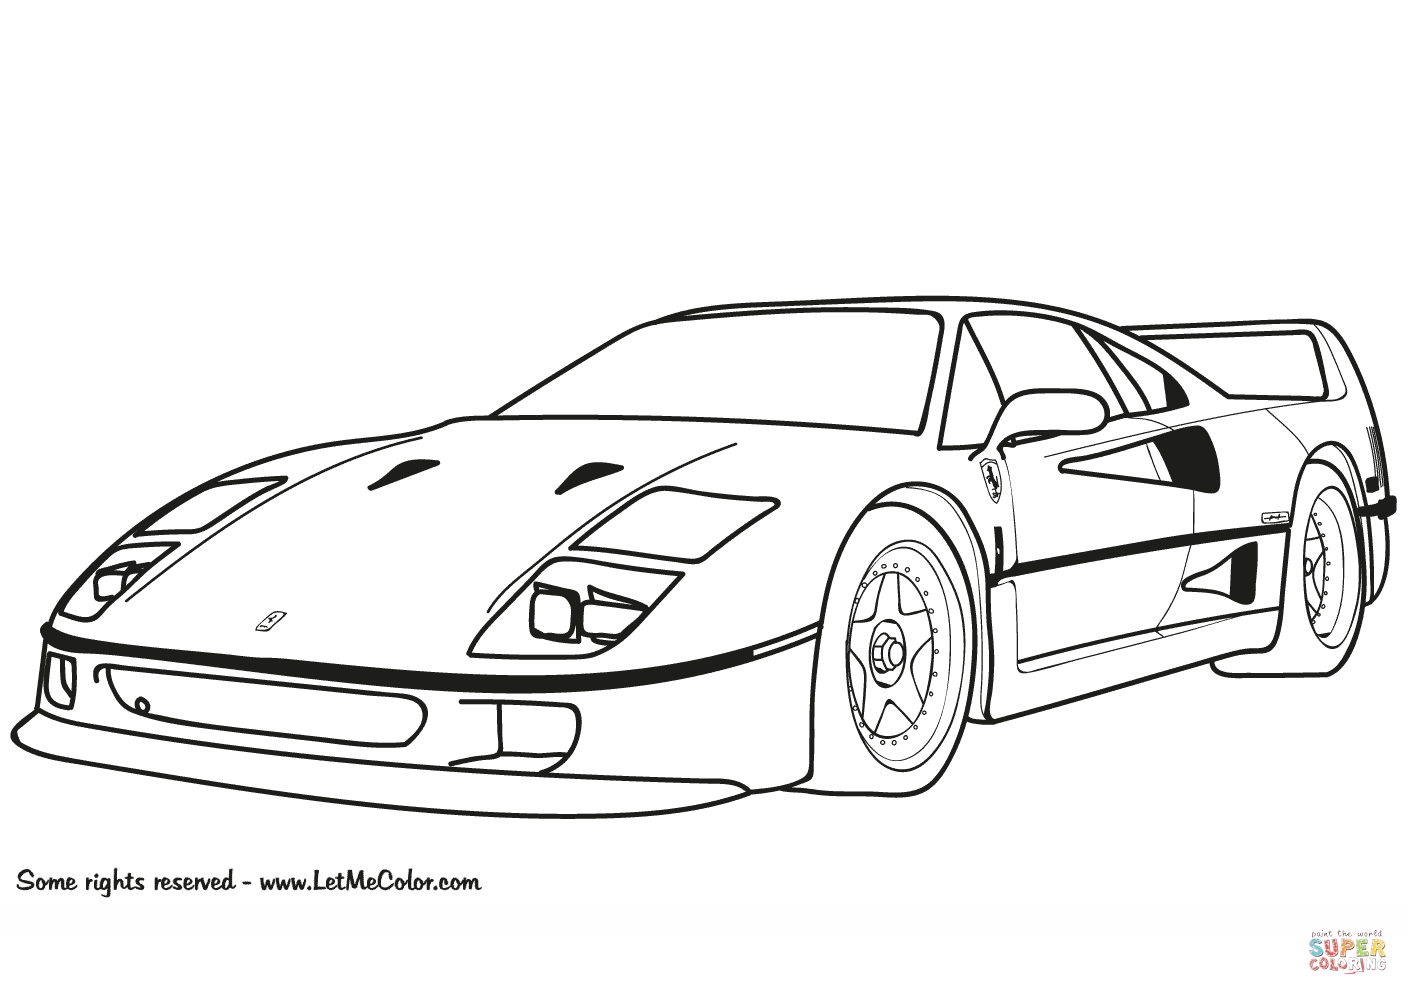 Ferrari f 40 clipart png library Ferrari F40 coloring page | Free Printable Coloring Pages png library